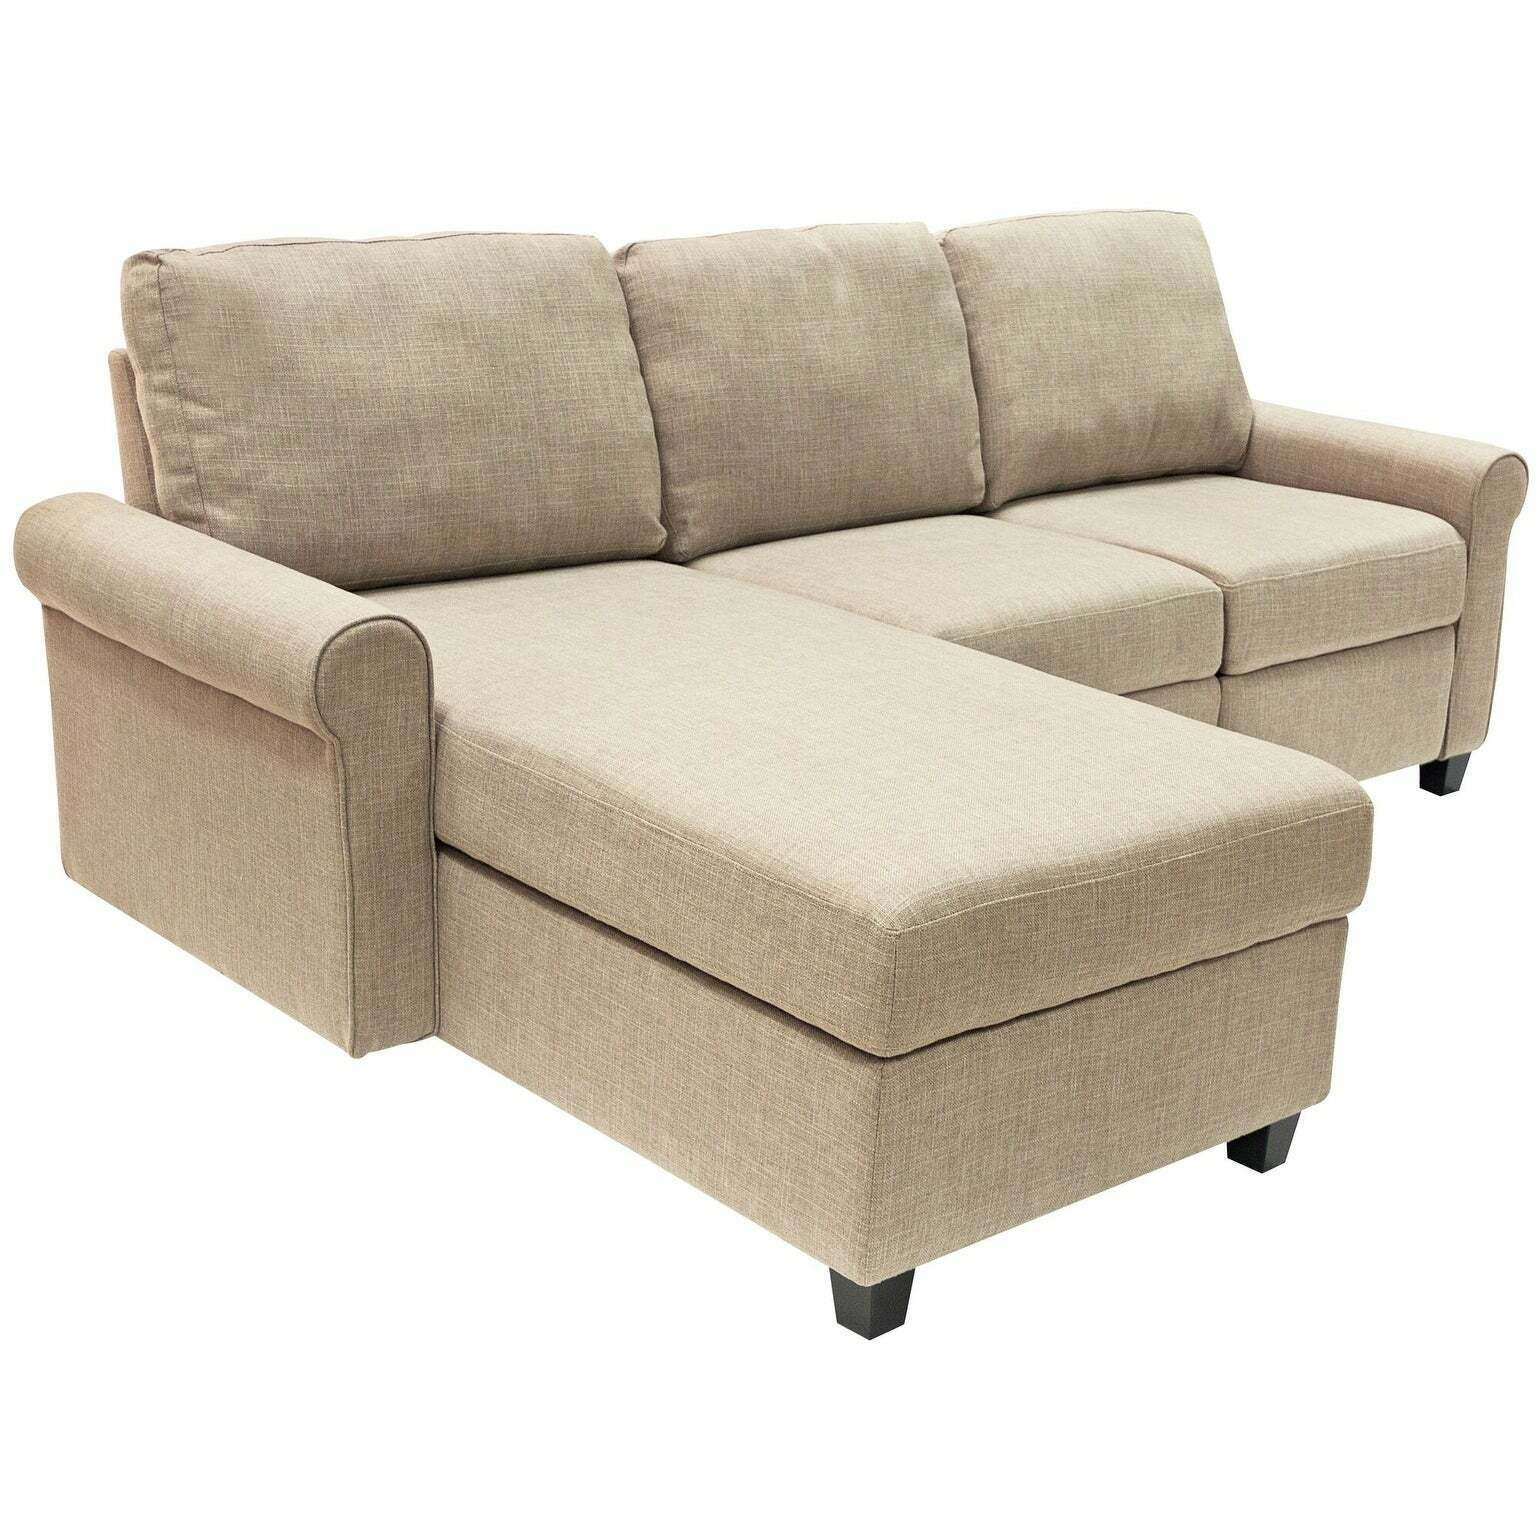 Phenomenal Serta Copenhagen Reclining Sectional With Left Storage Chaise Small Sofa Gmtry Best Dining Table And Chair Ideas Images Gmtryco